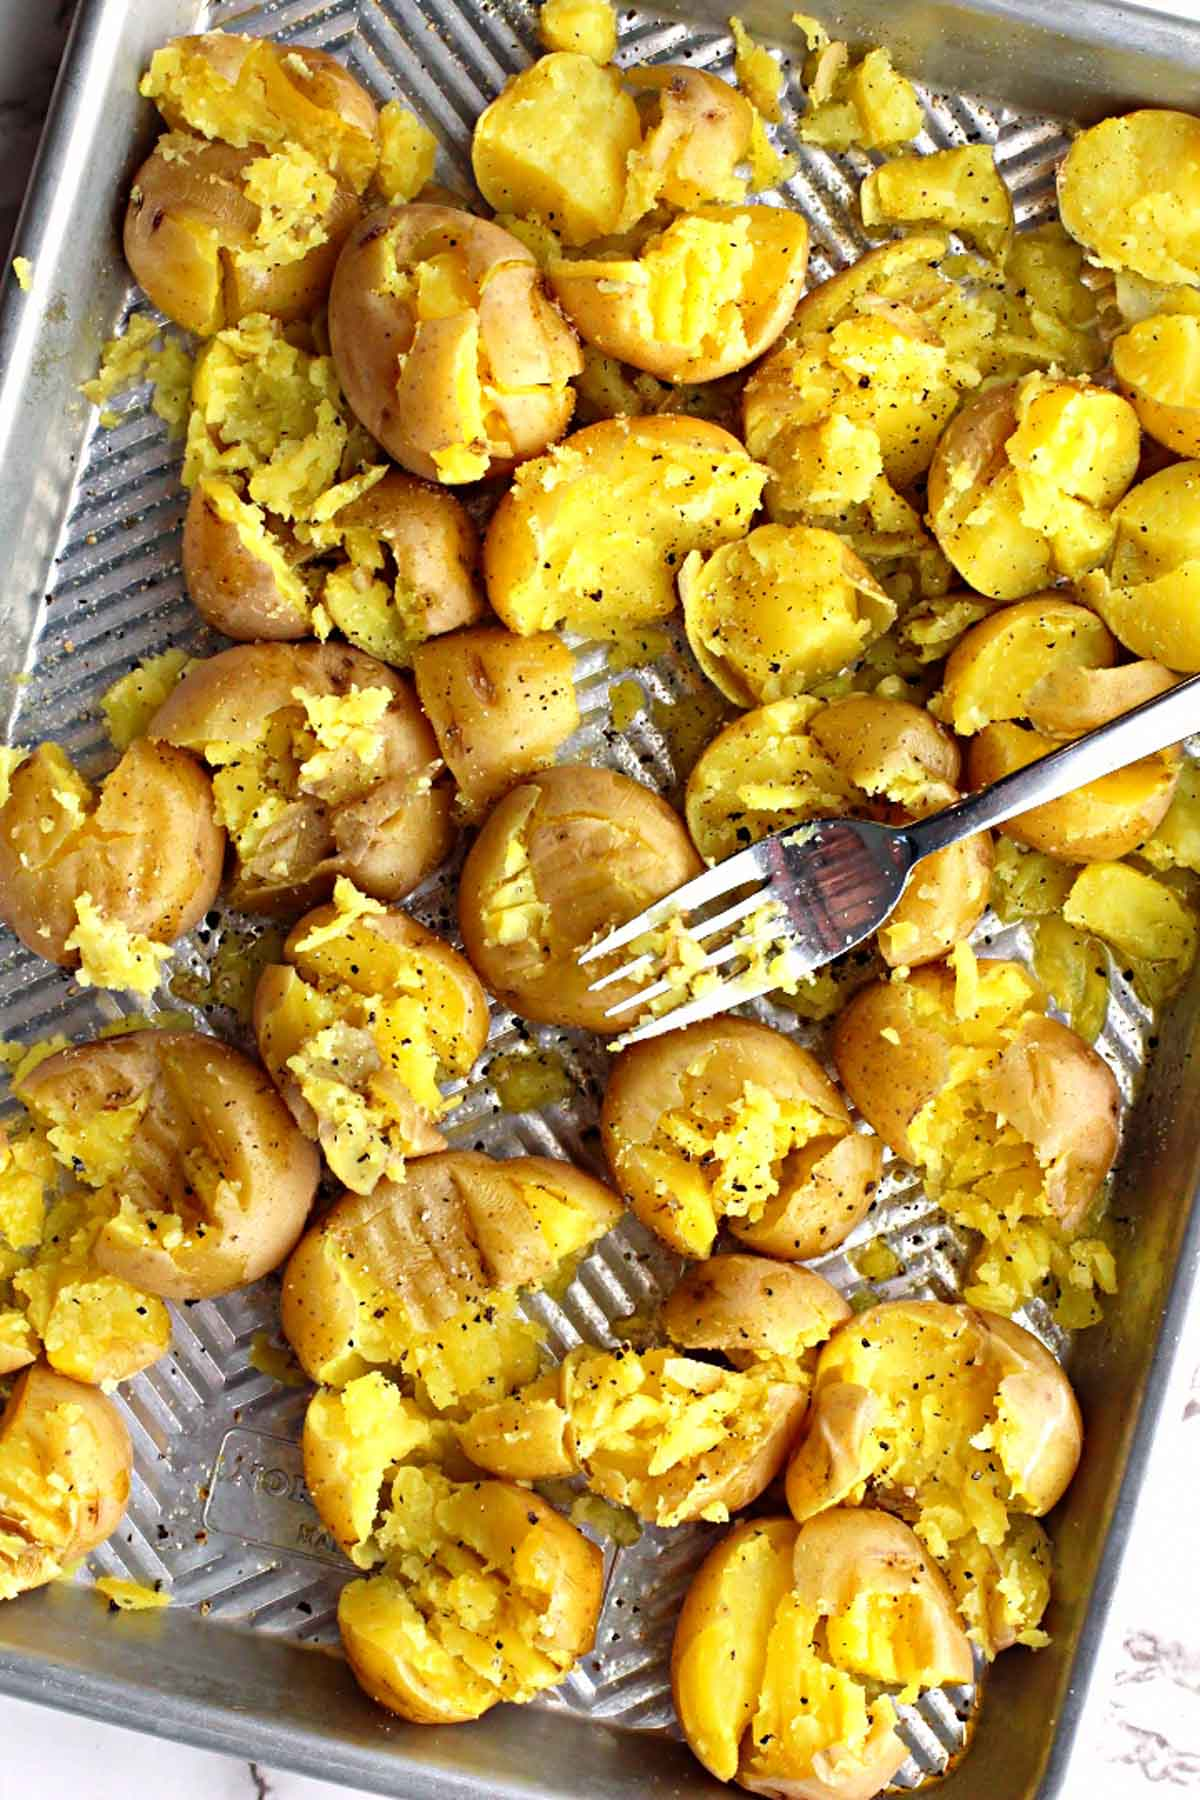 yukon gold potatoes on a sheet pan getting smashed by a fork